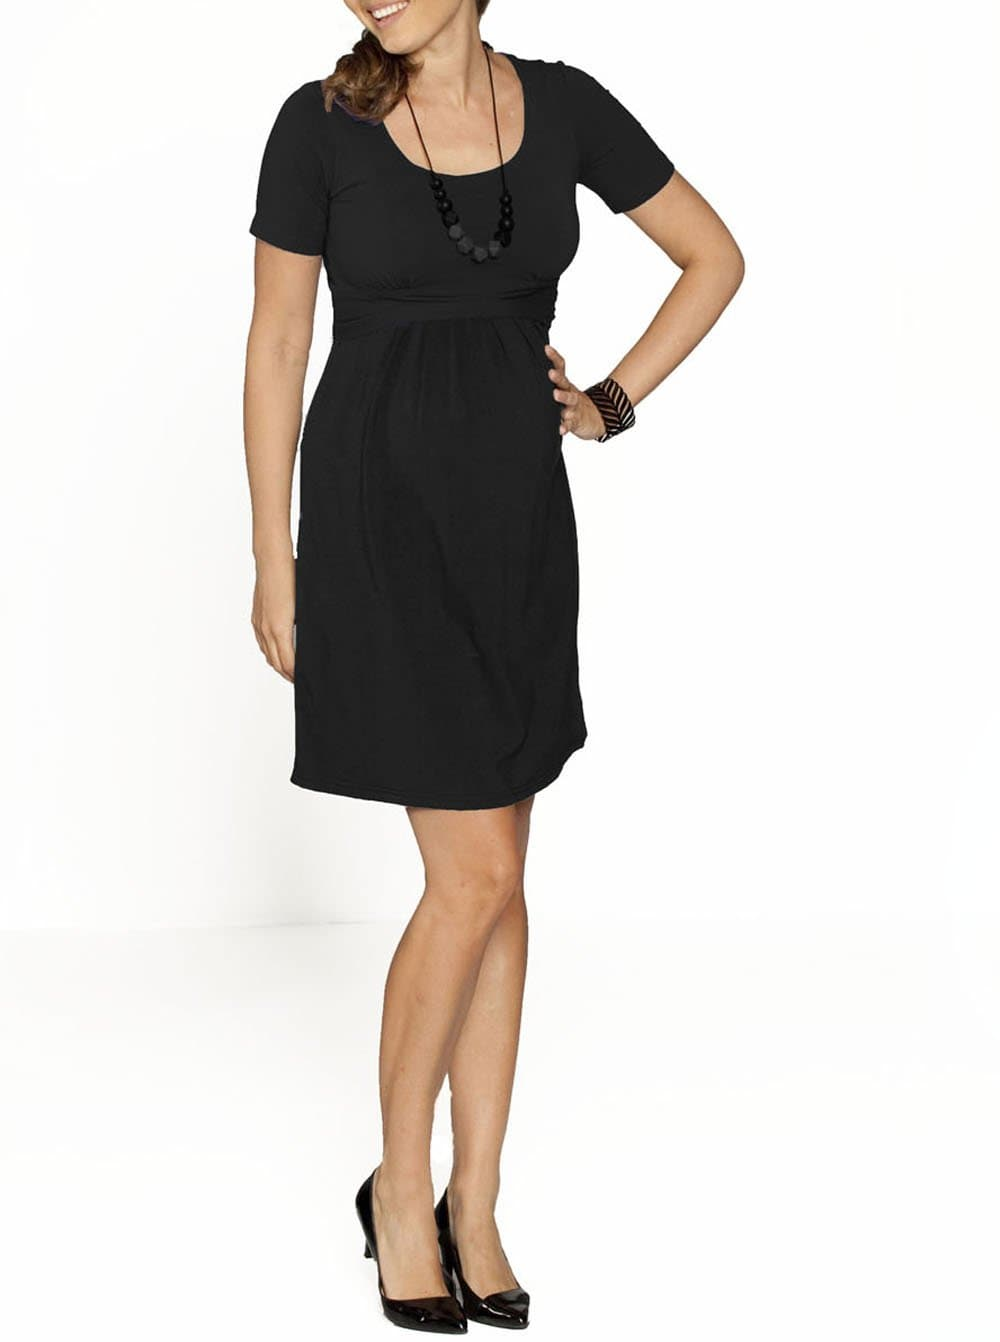 Busy Mummy Nursing Empire Waist Dress in Black - Angel Maternity - Maternity clothes - shop online